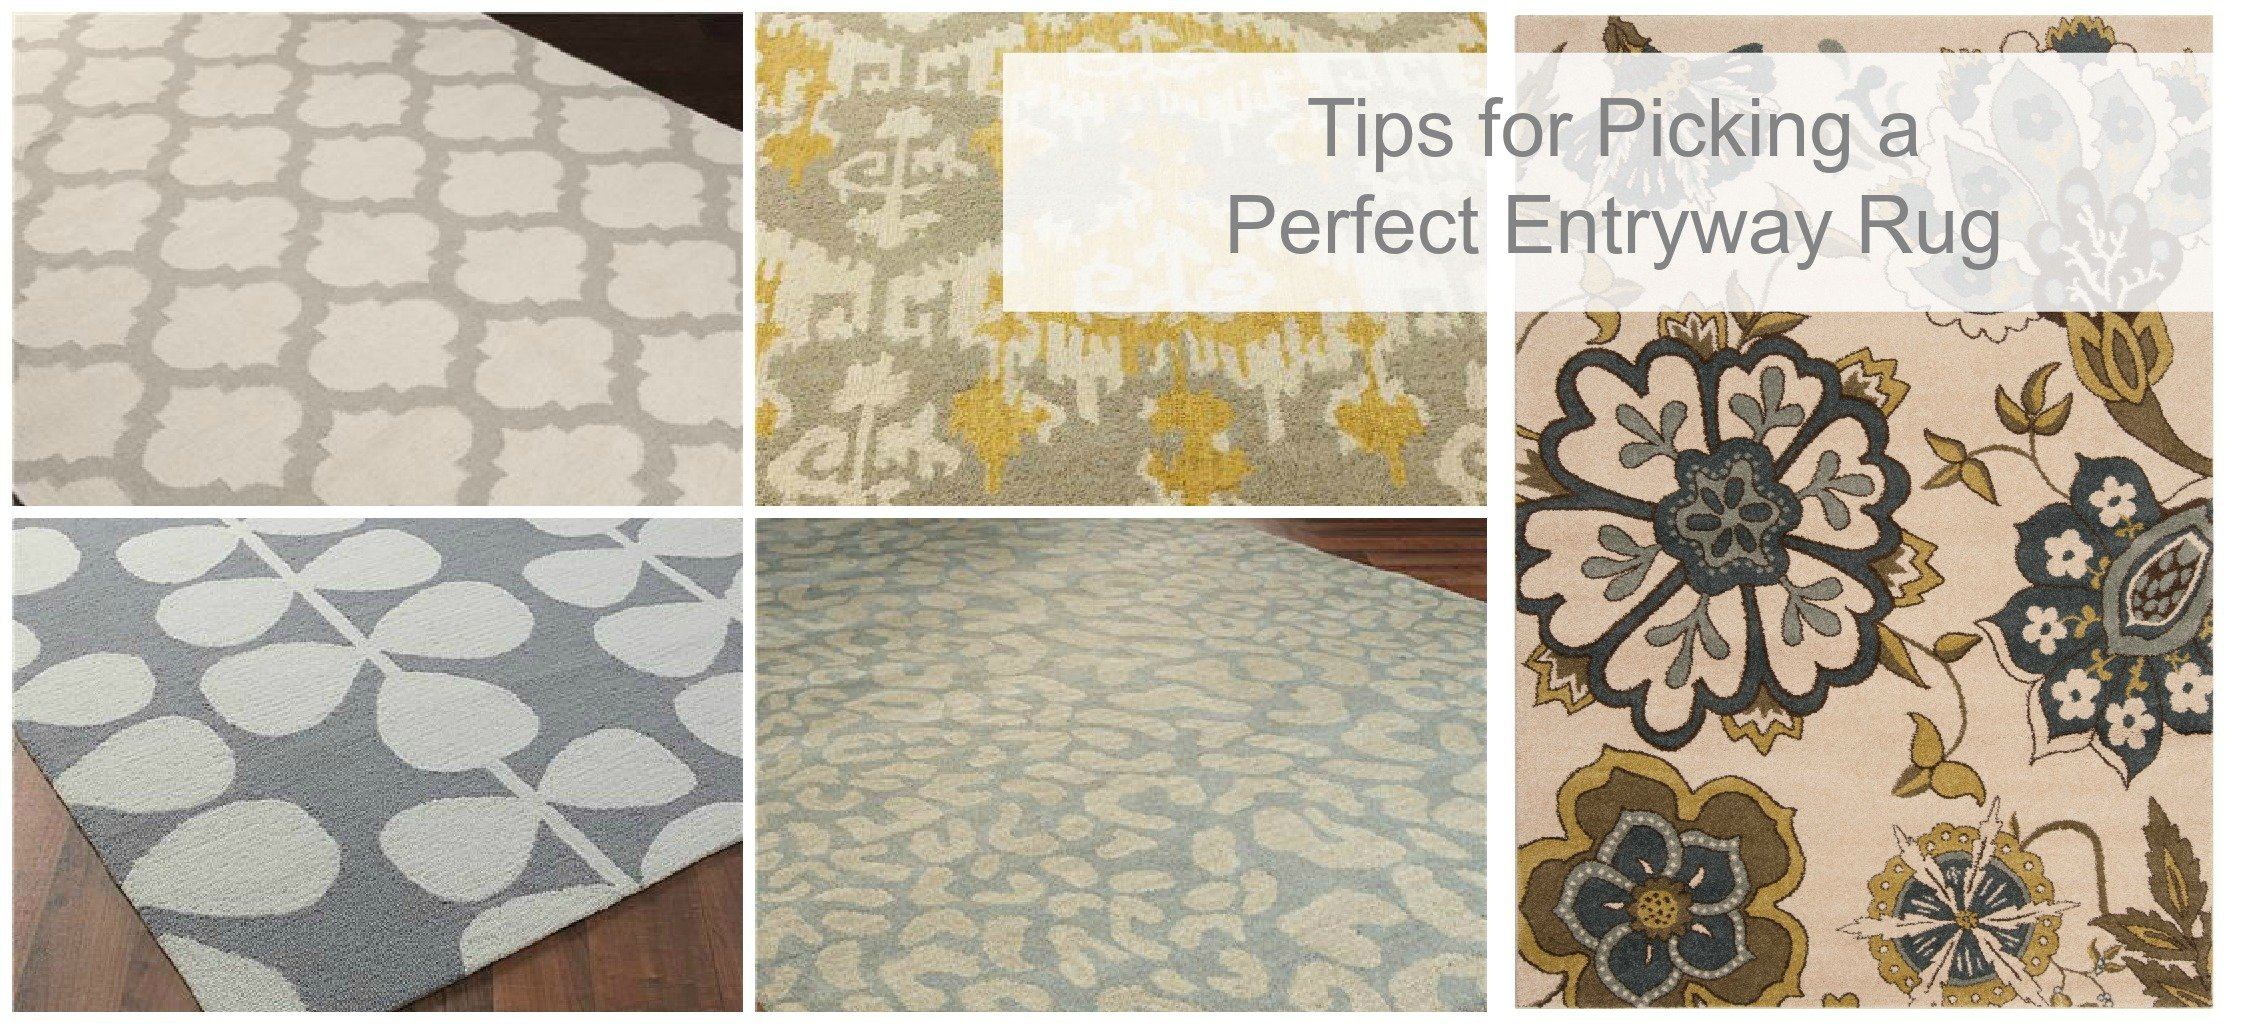 How to Pick the Perfect Entryway Rug